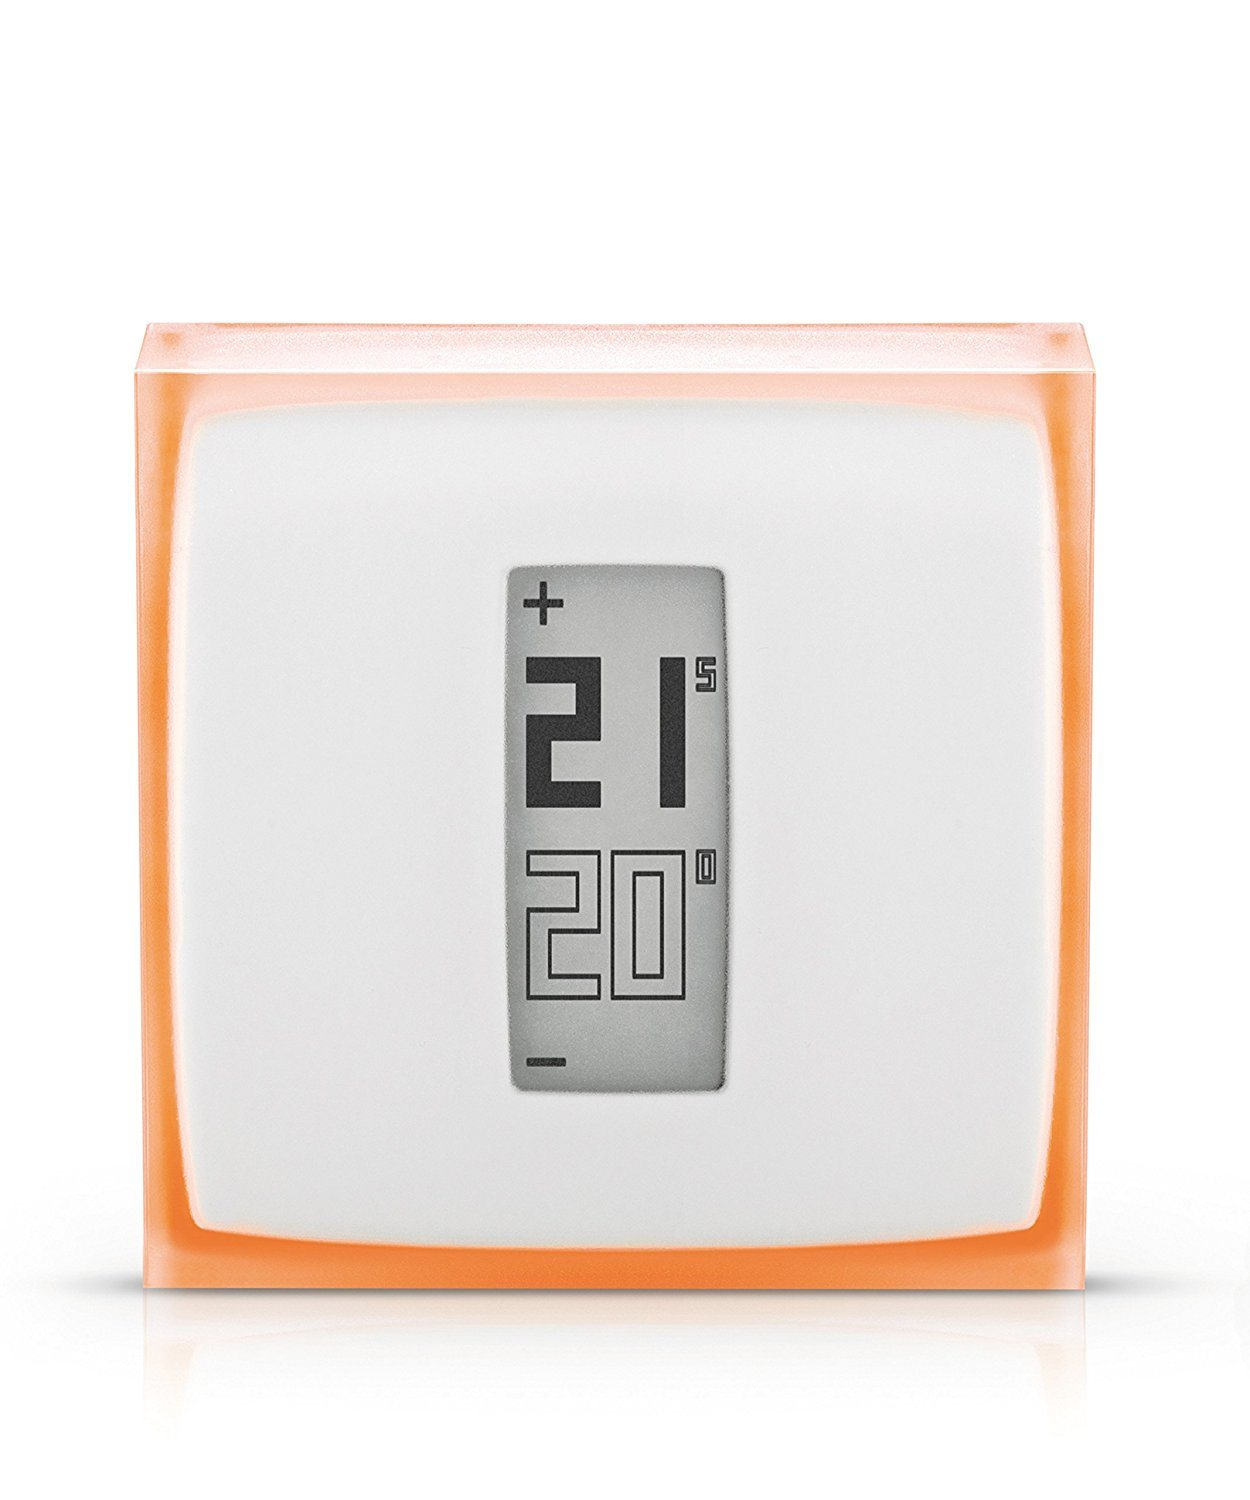 Thermostat Connecté Netatmo NTH01-EN-EU